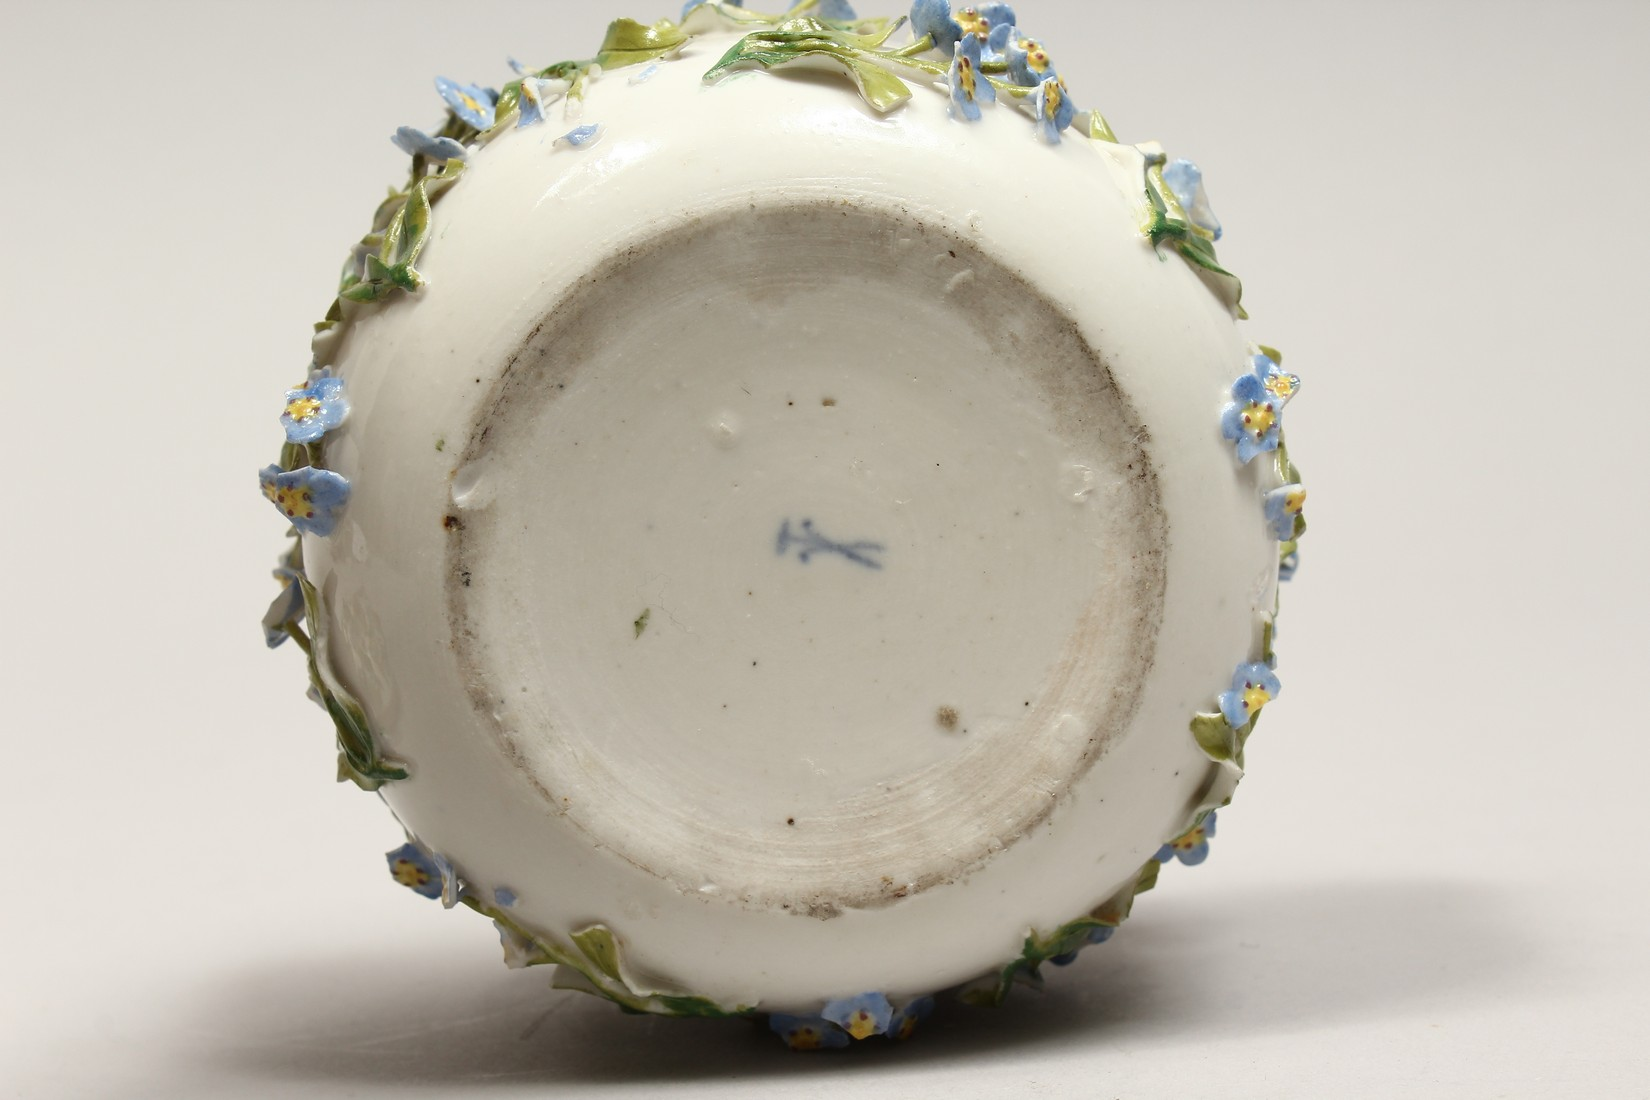 A DRESDON CIRCULAR BOWL AND COVER painted with moths and encrusted with flowers. 4.5ins diameter. - Image 7 of 8